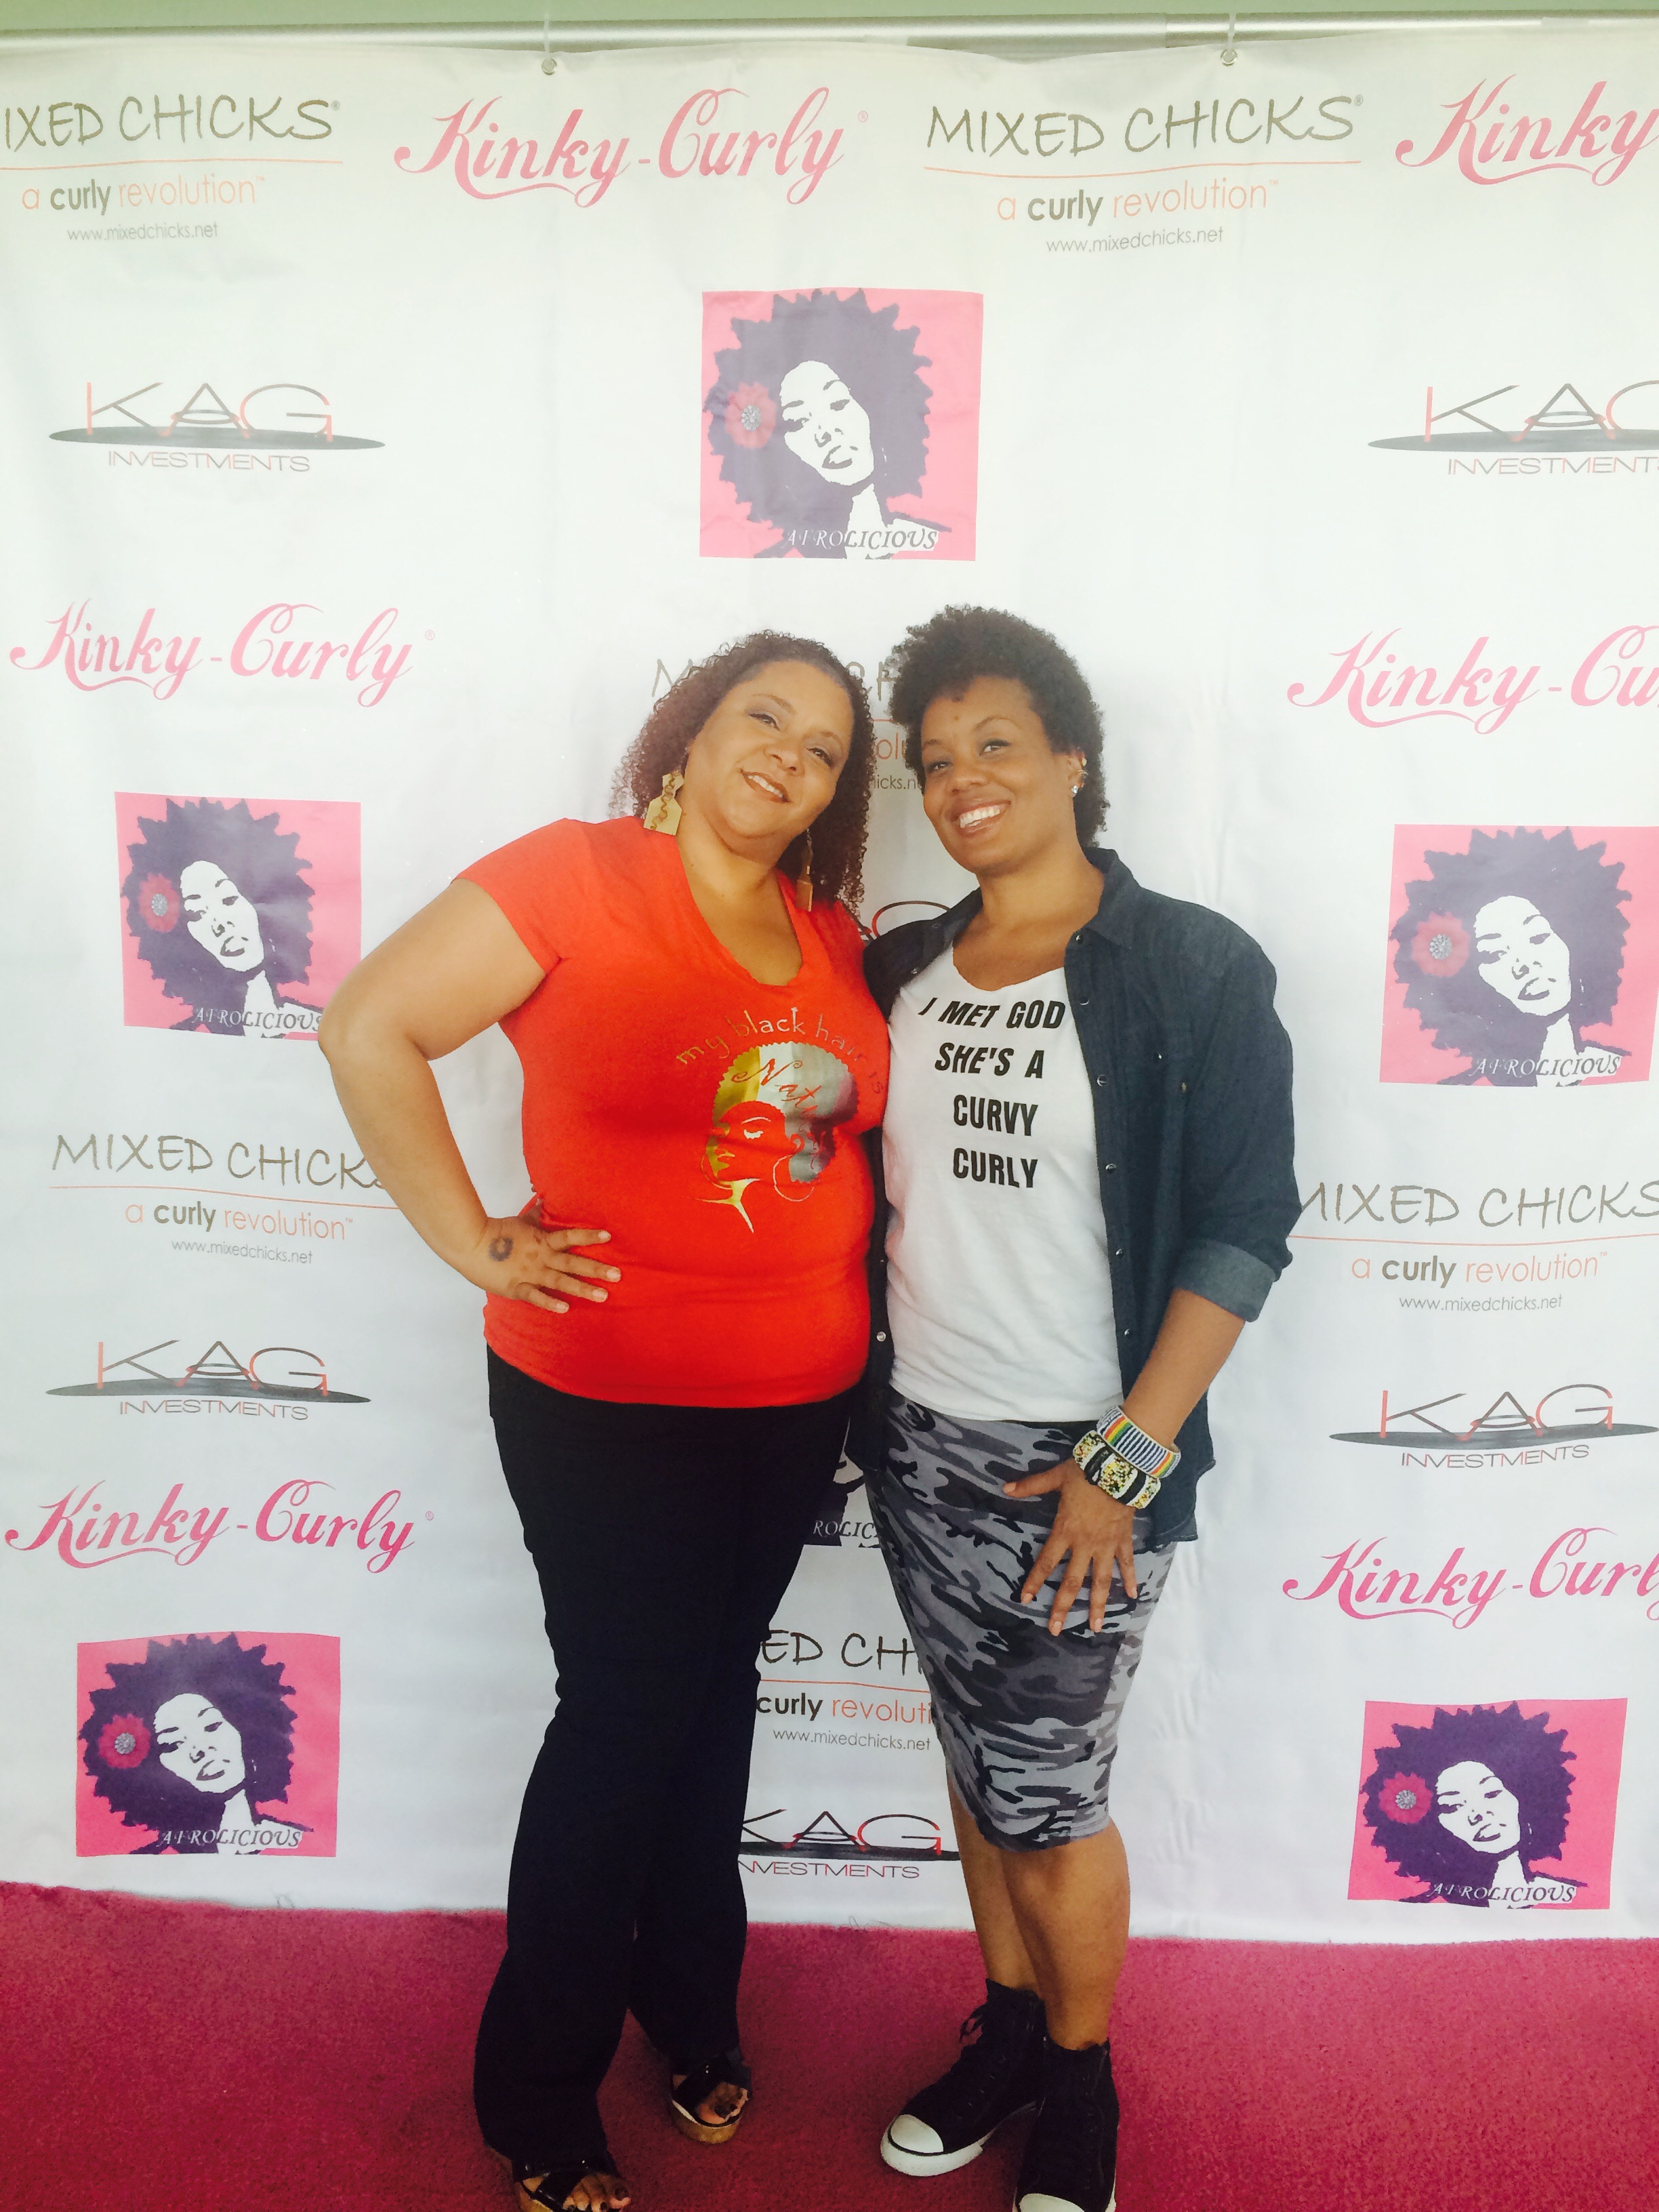 Lydia Boyd of La Curly Girls and Lila, founder of CGNC.